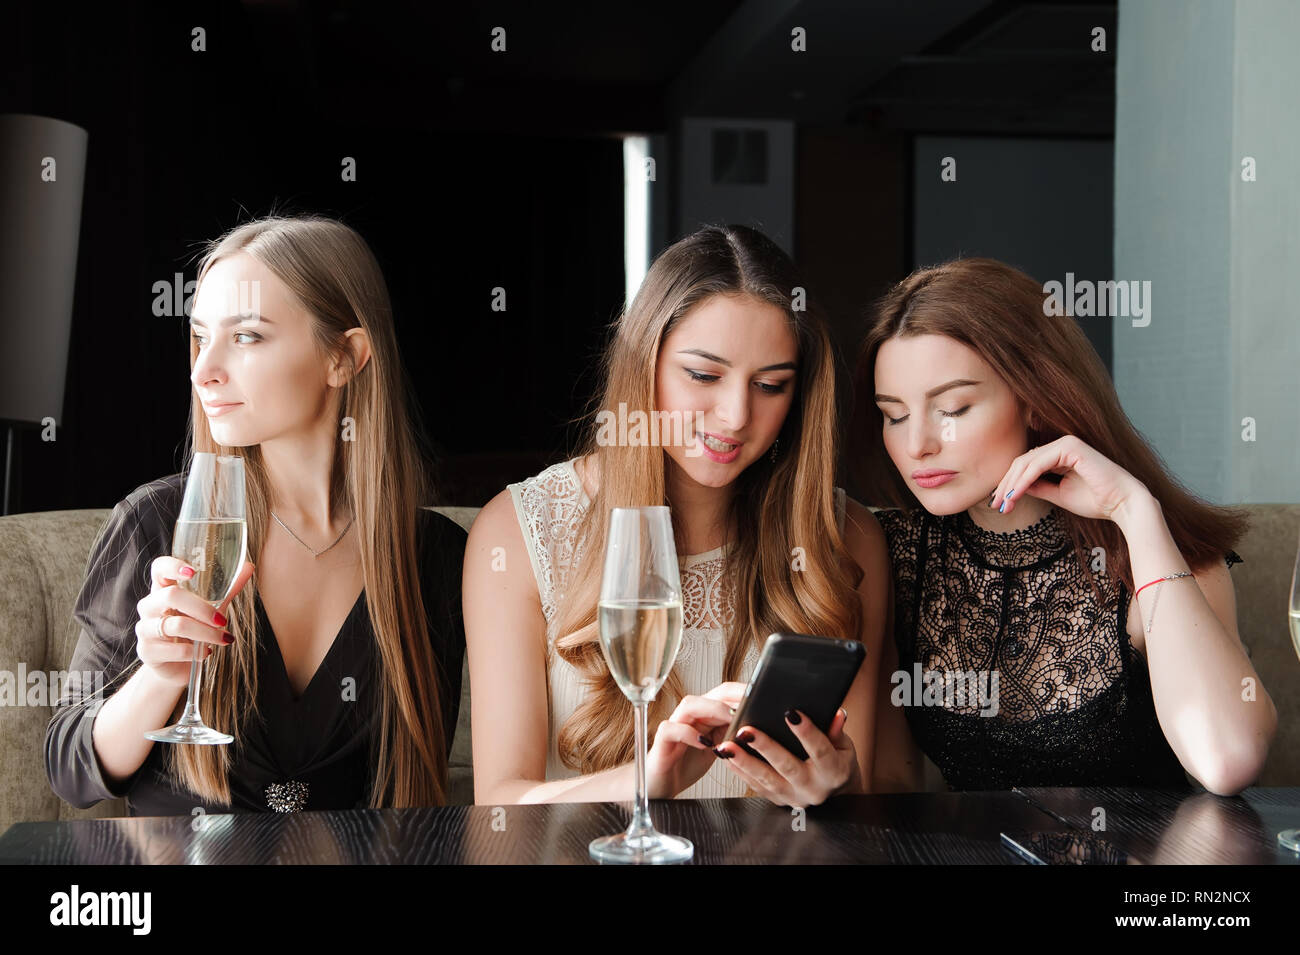 always connected, internet addiction, young girls in cafe - Stock Image